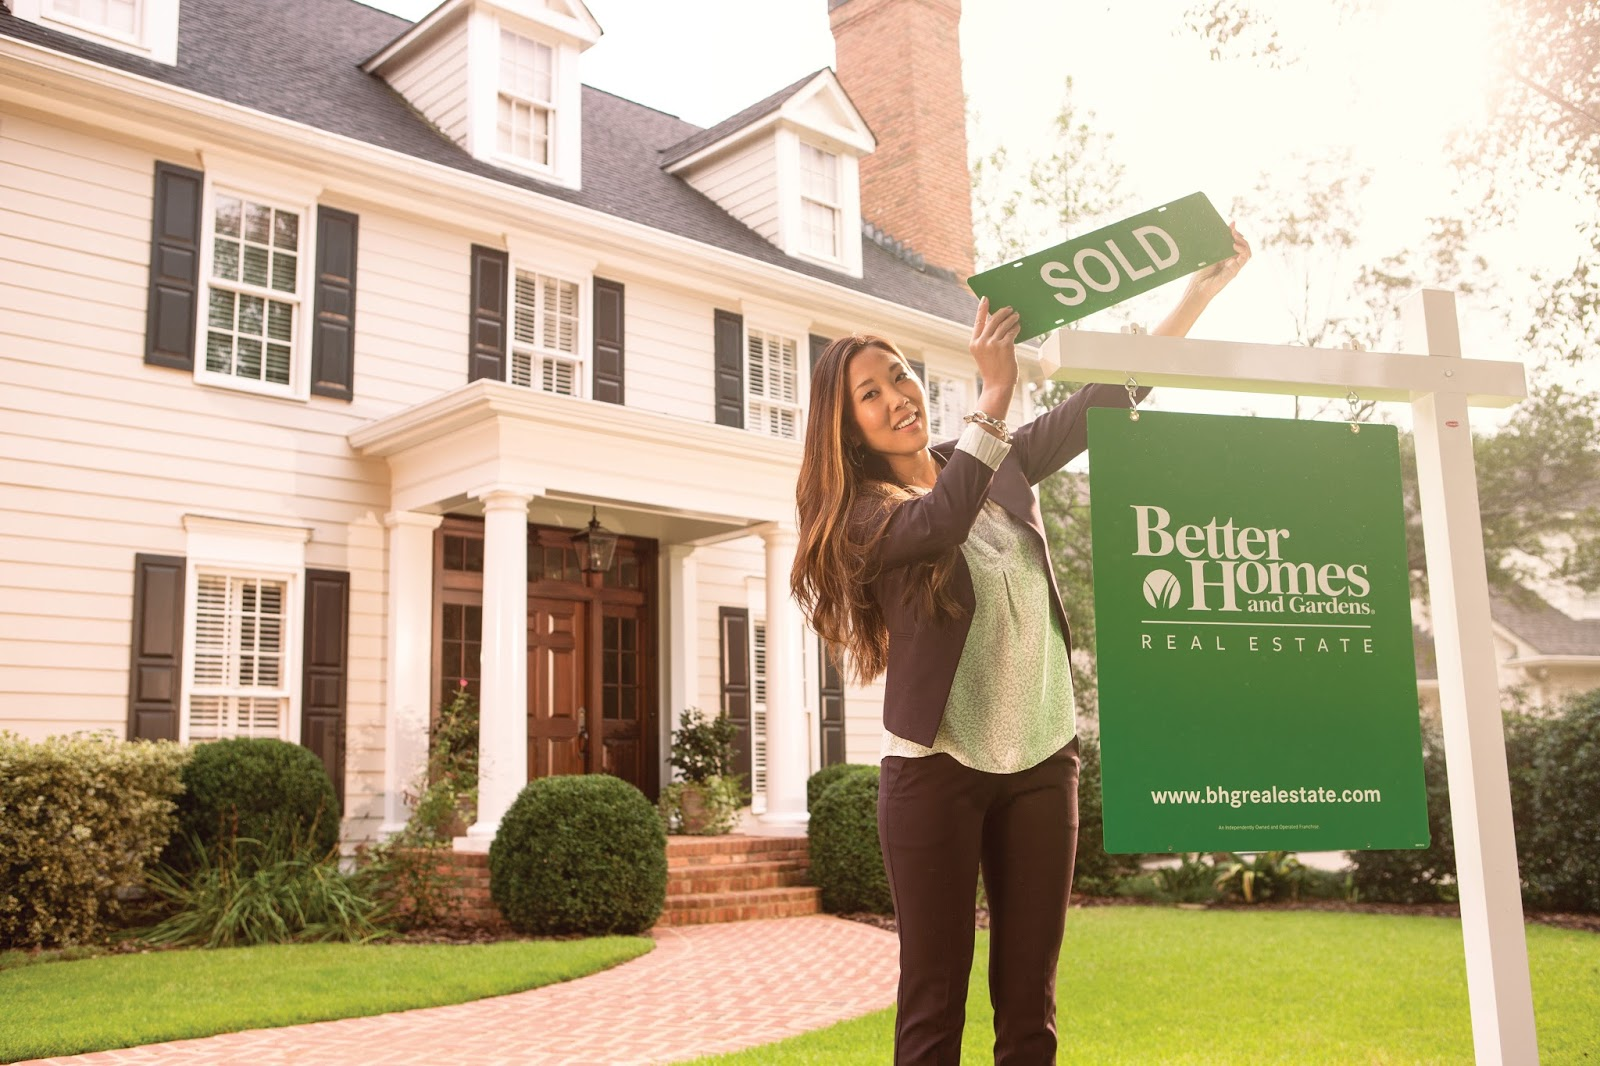 Bhgre The Leading Lifestyle Brand In Real Estate Find